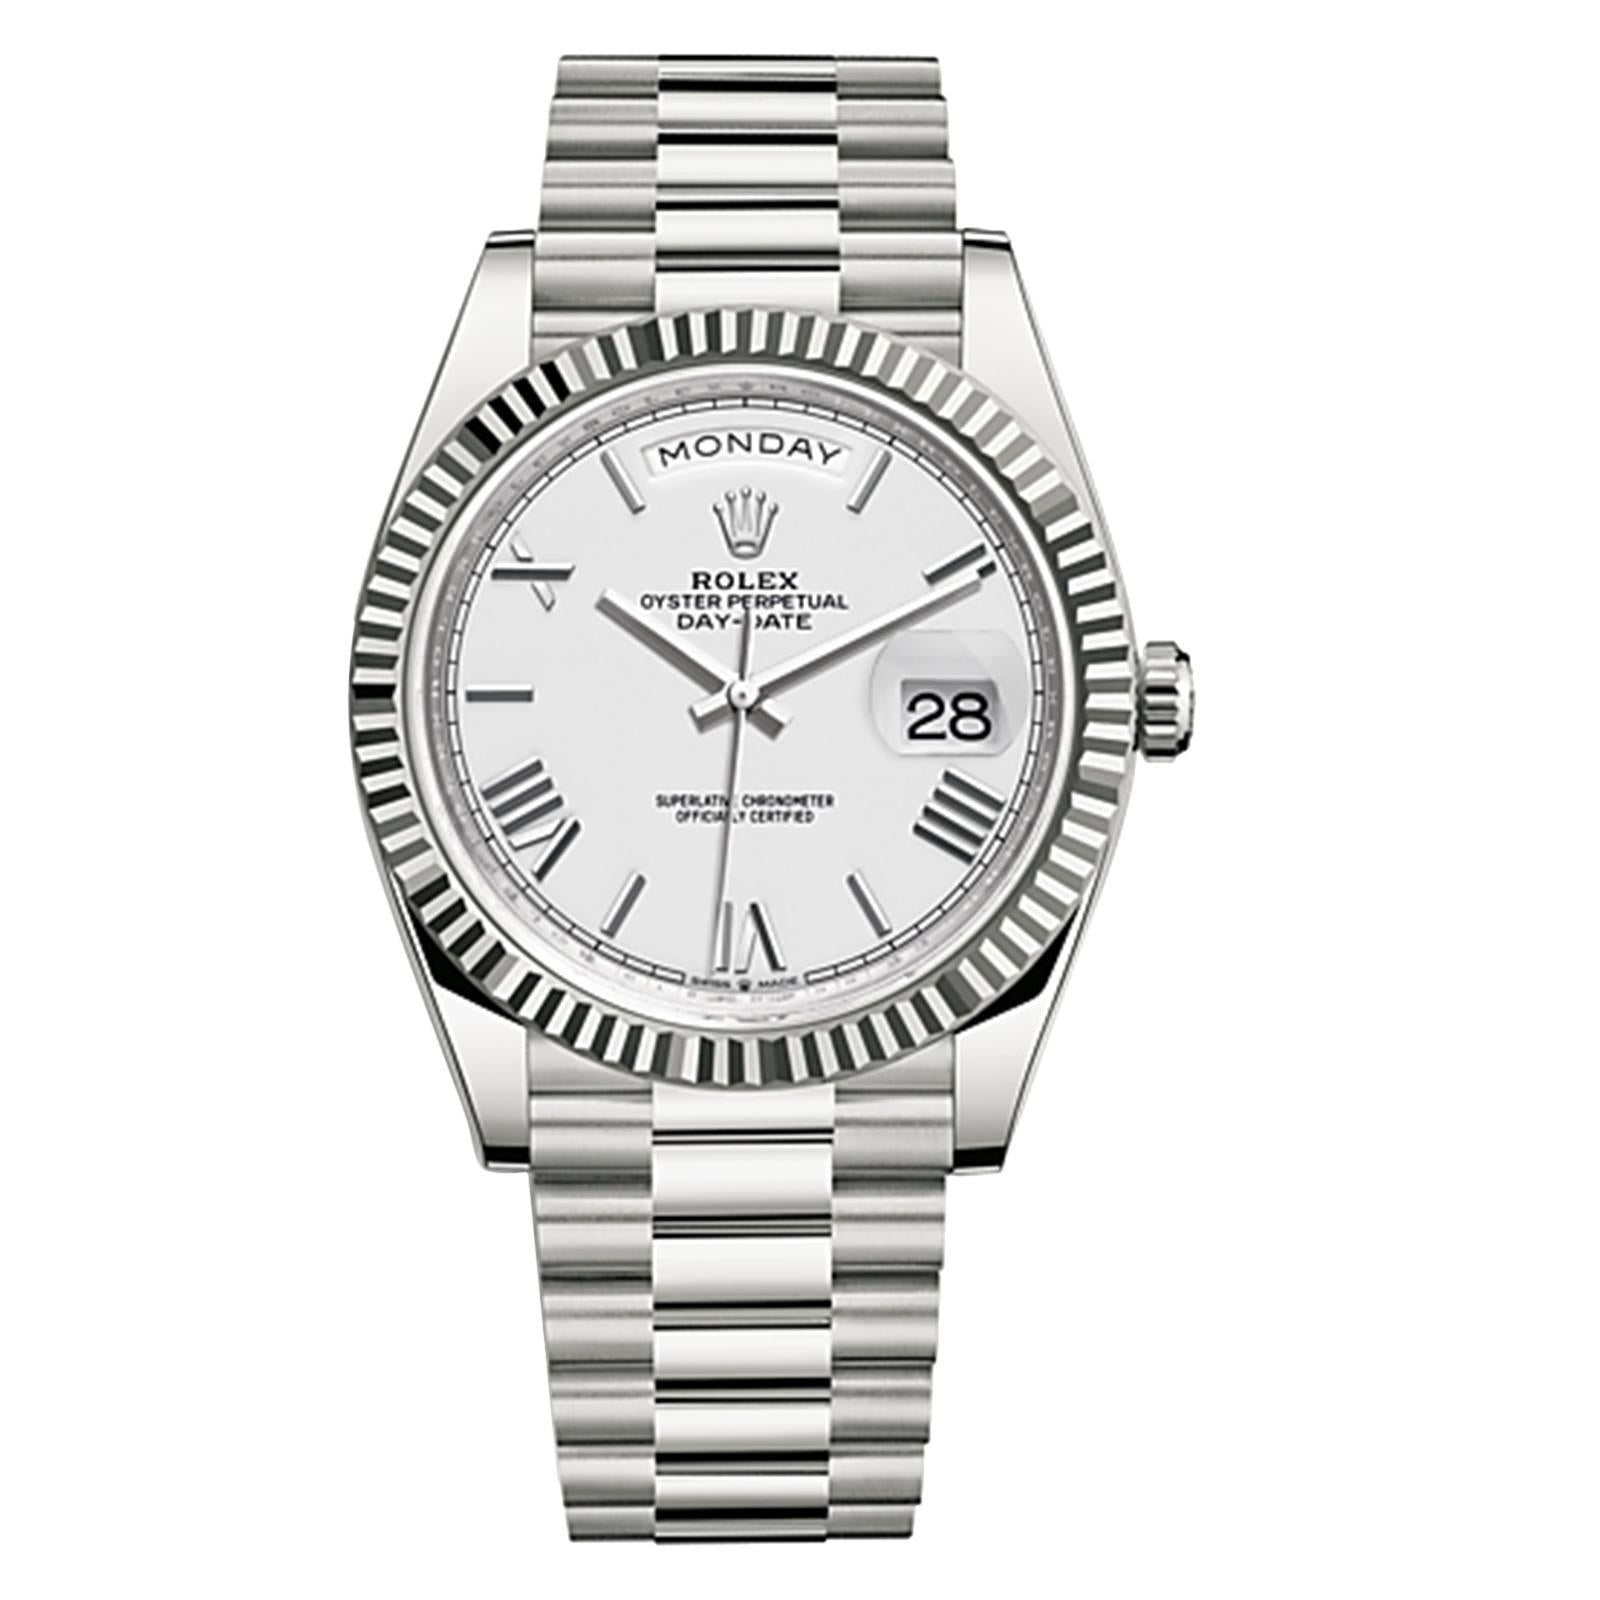 replica rolex day date oyster 40 mm white gold - Watches-2019